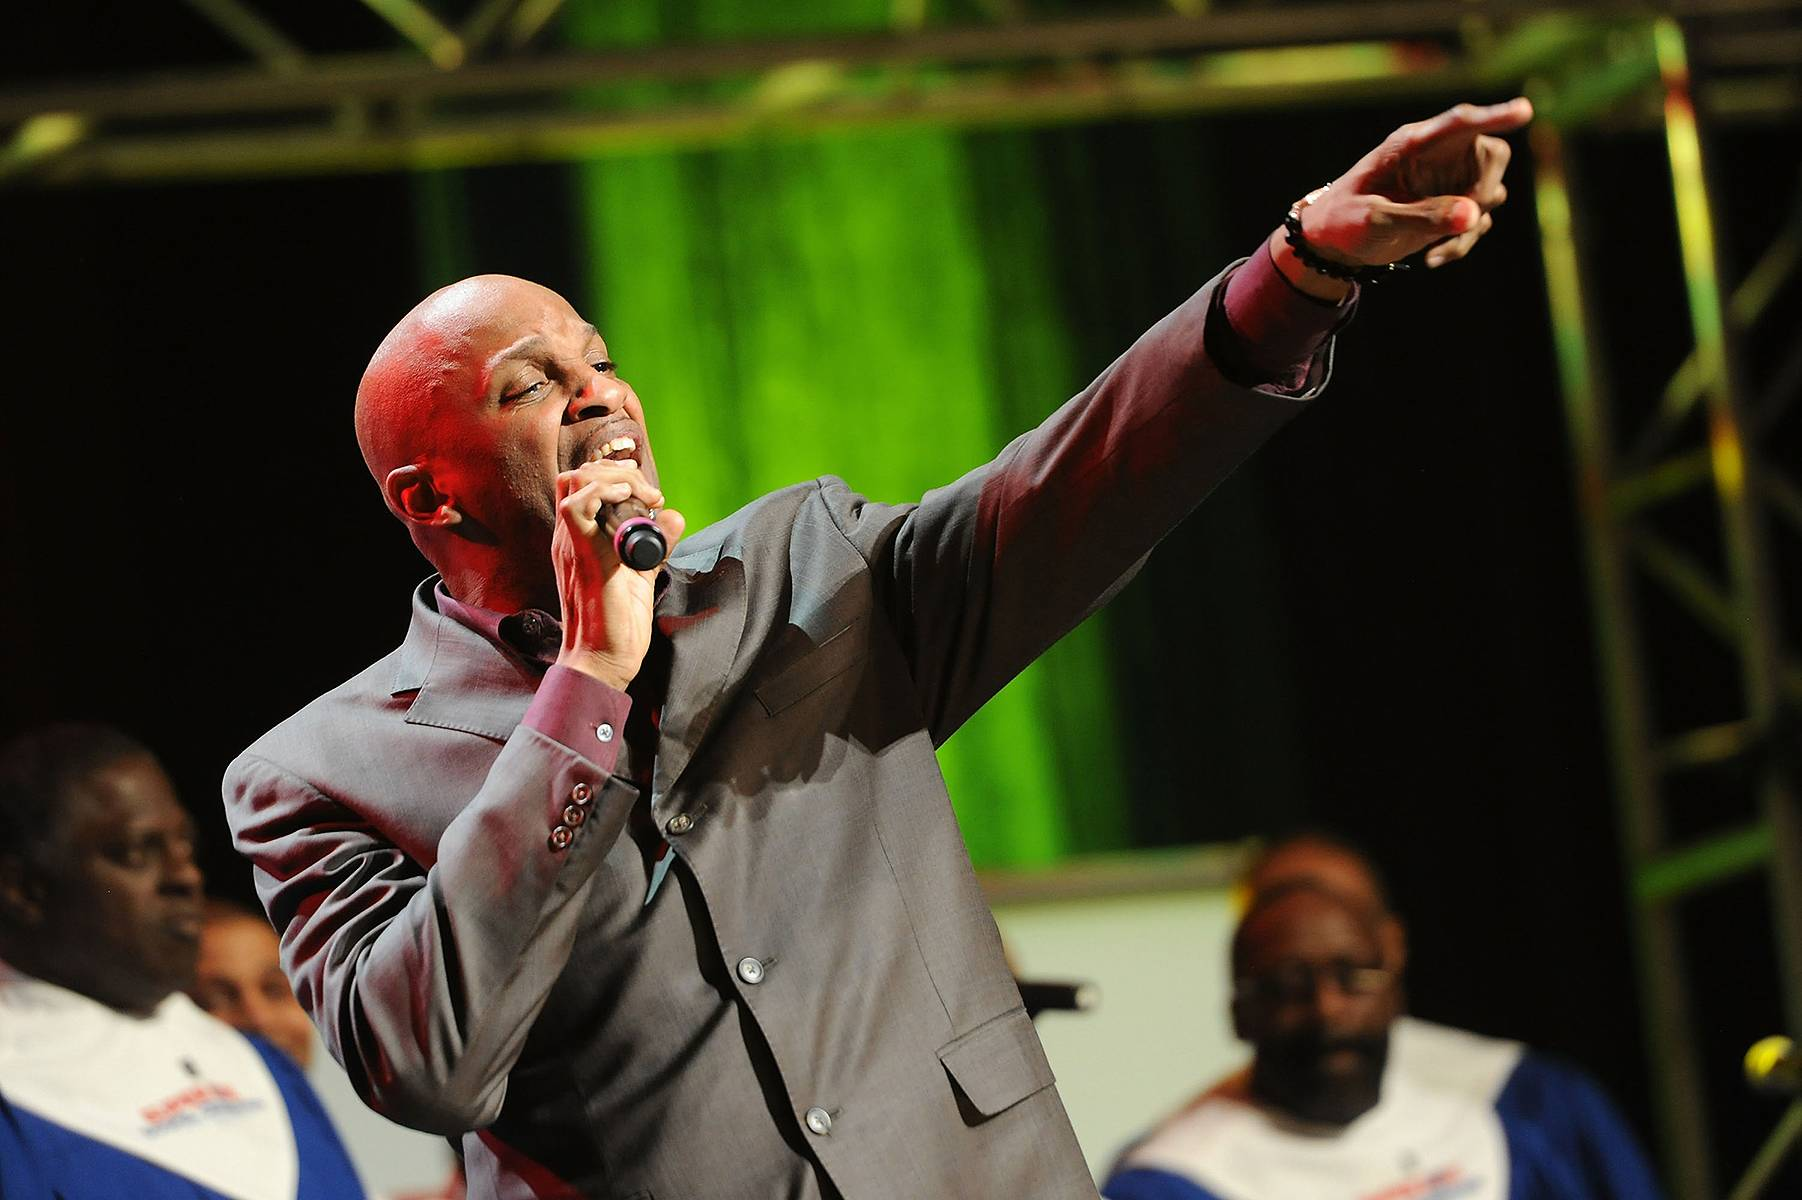 Withholding Nothing - Donnie McClurkin performs at the Super Bowl Gospel Celebration 2012 at Clowes Memorial Hall of Butler University in Indianapolis. (Photo: Rick Diamond/Getty Images for Super Bowl)